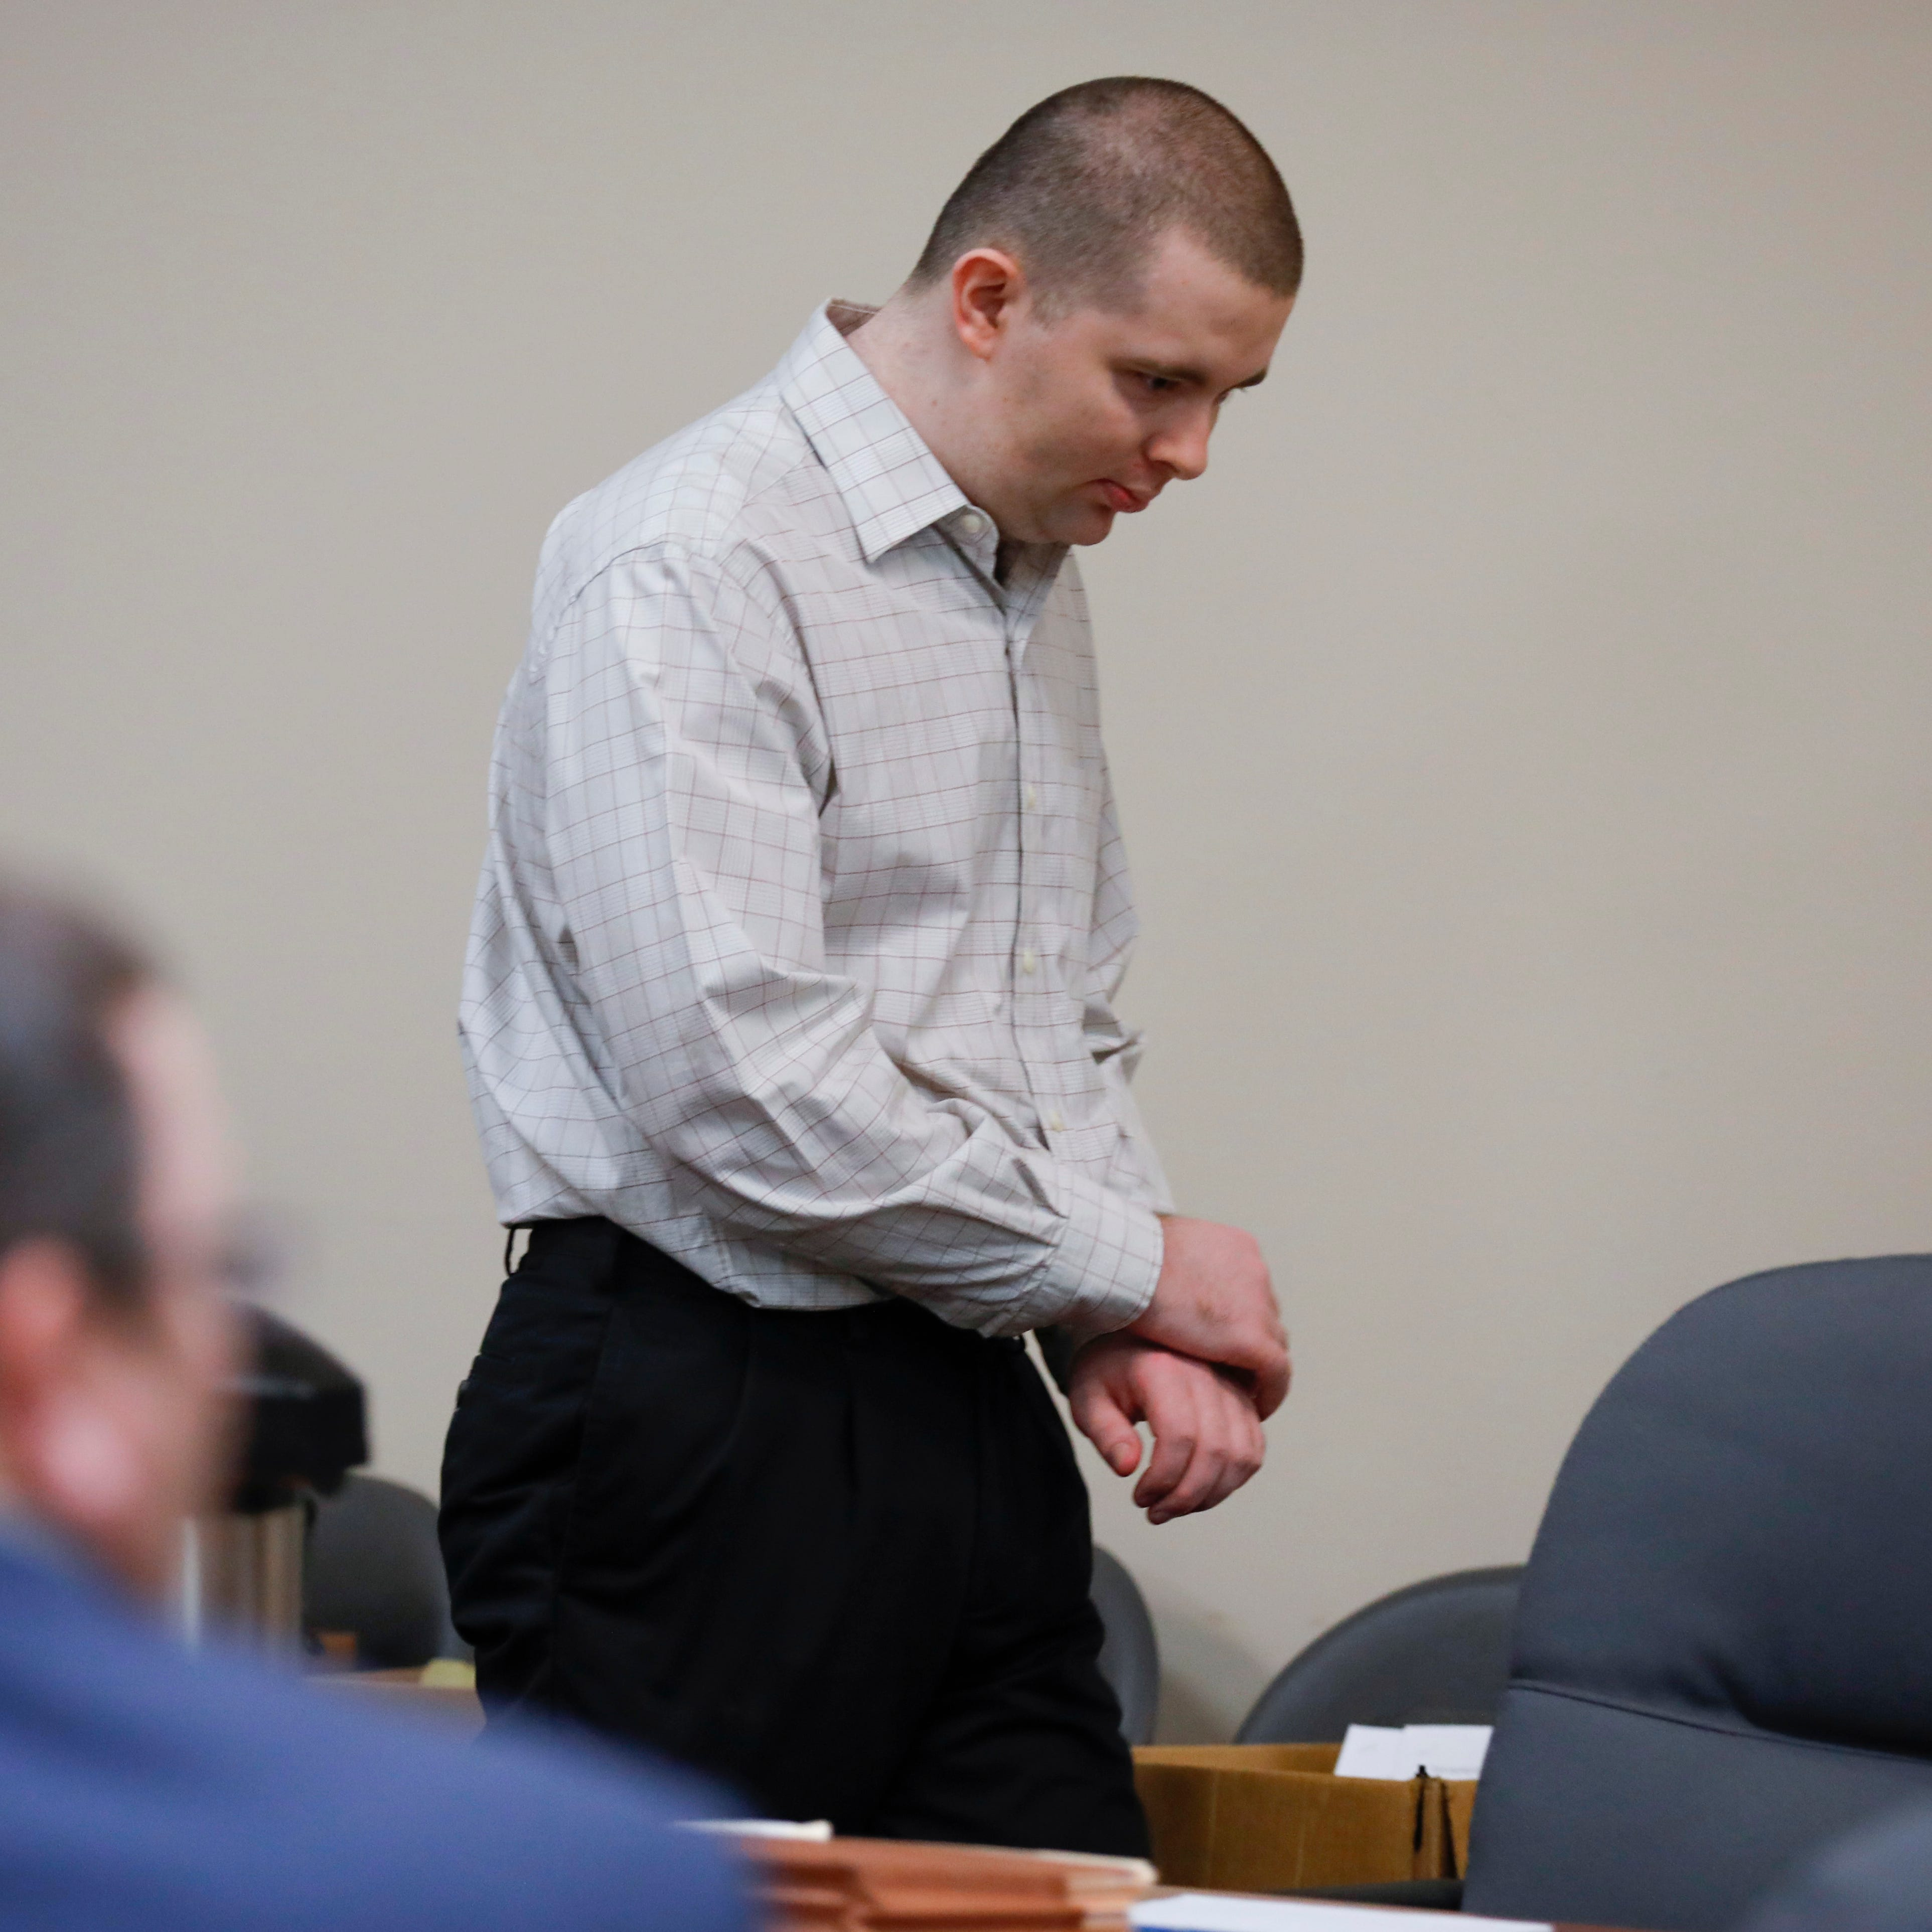 Live updates: Nicholas Godejohn trial begins in Greene County